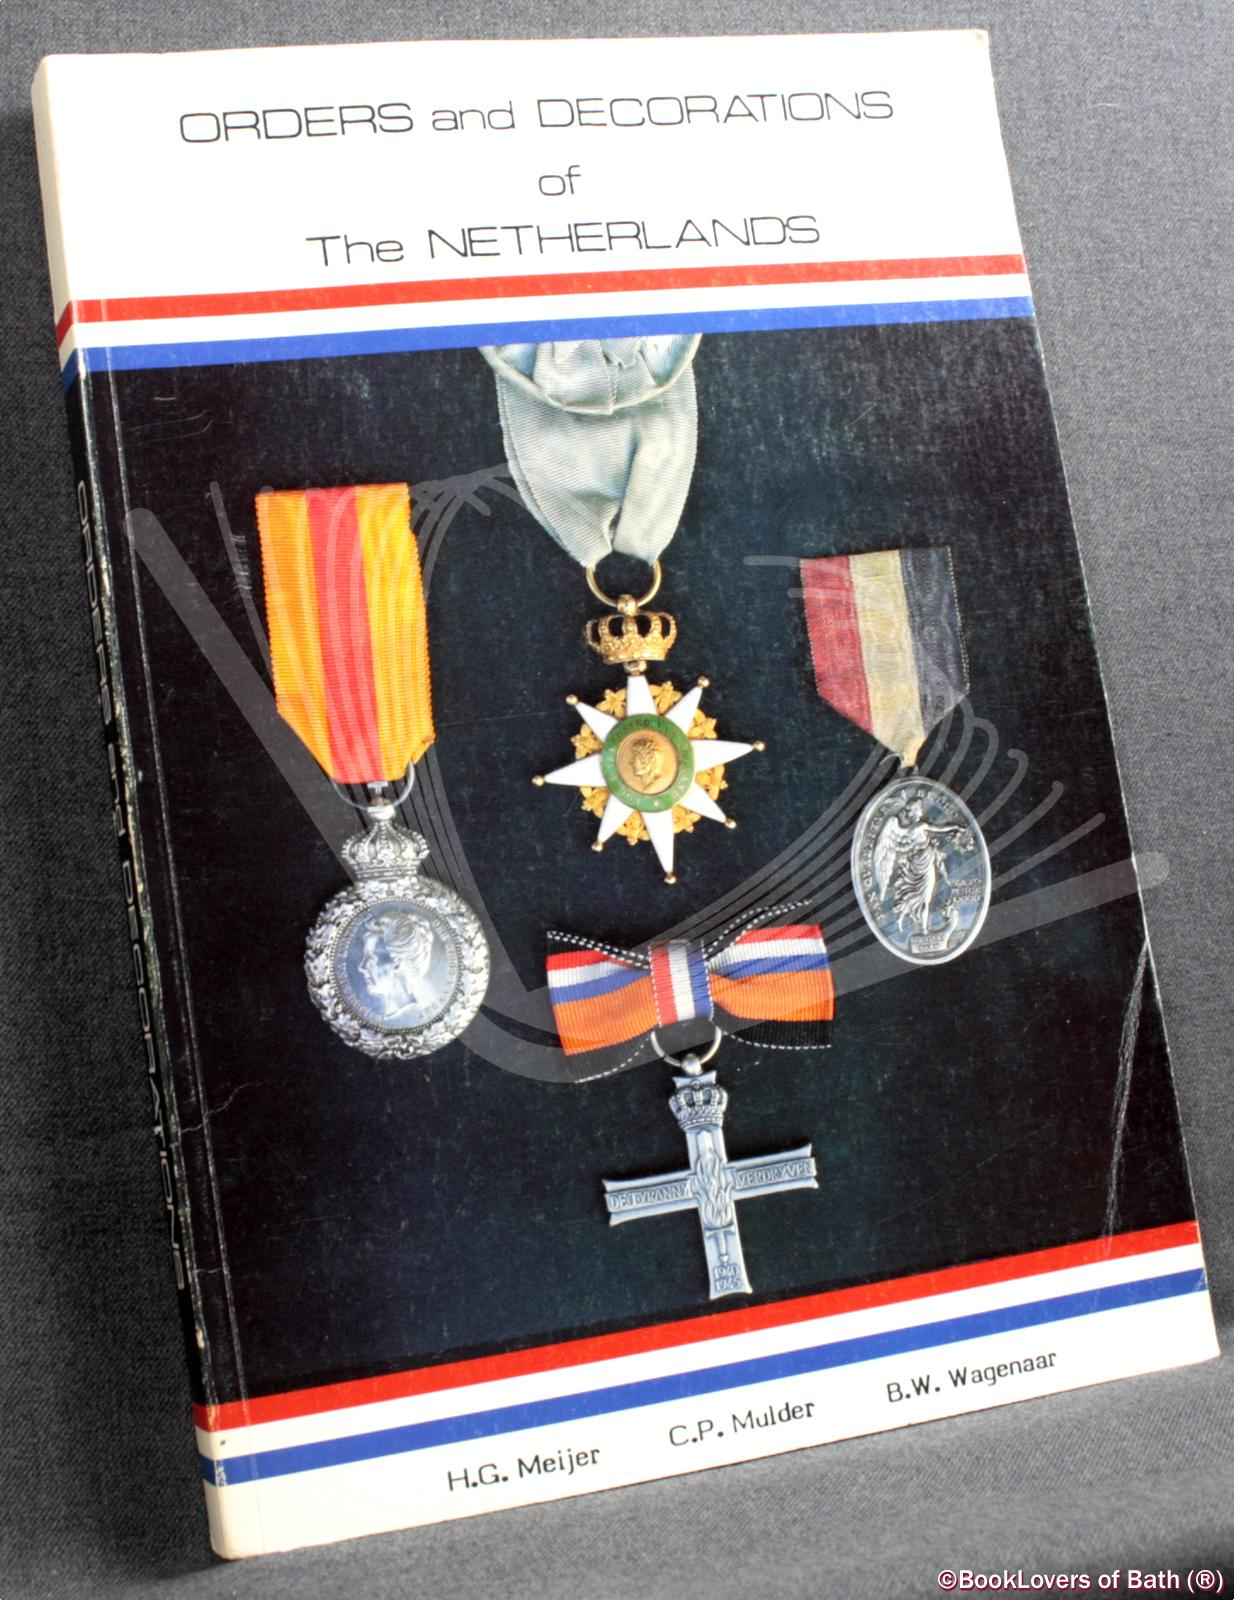 Orders and Decorations of the Netherlands - H. G. Meijer, C. P. Mulder & B. W. Wagenaar